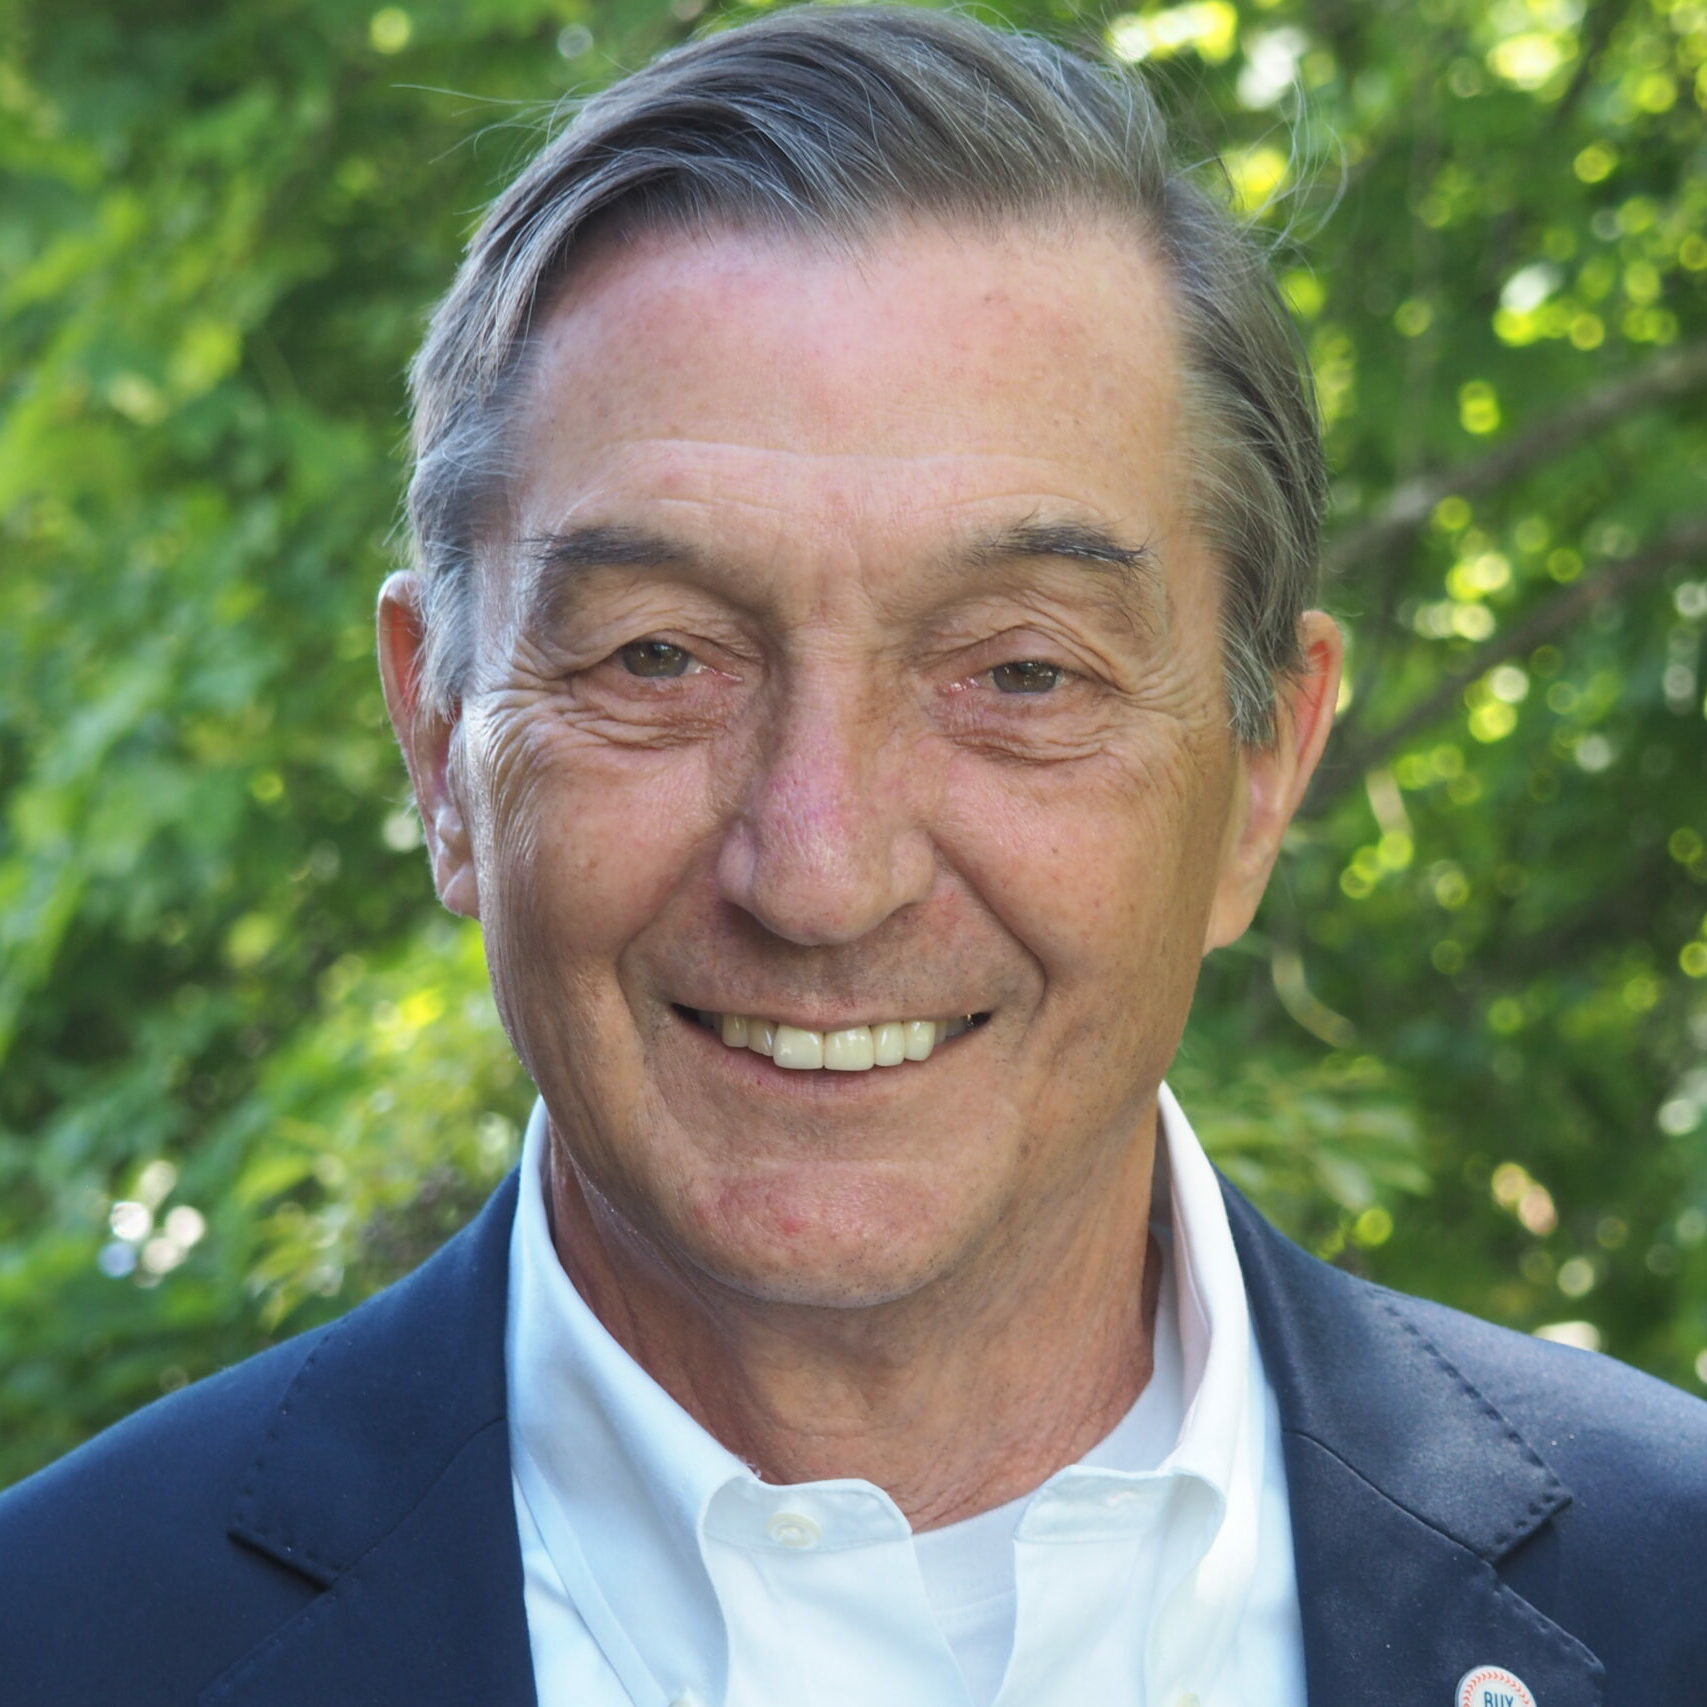 headshot of David Lepage wearing a suit while he smiles in front of greenery.